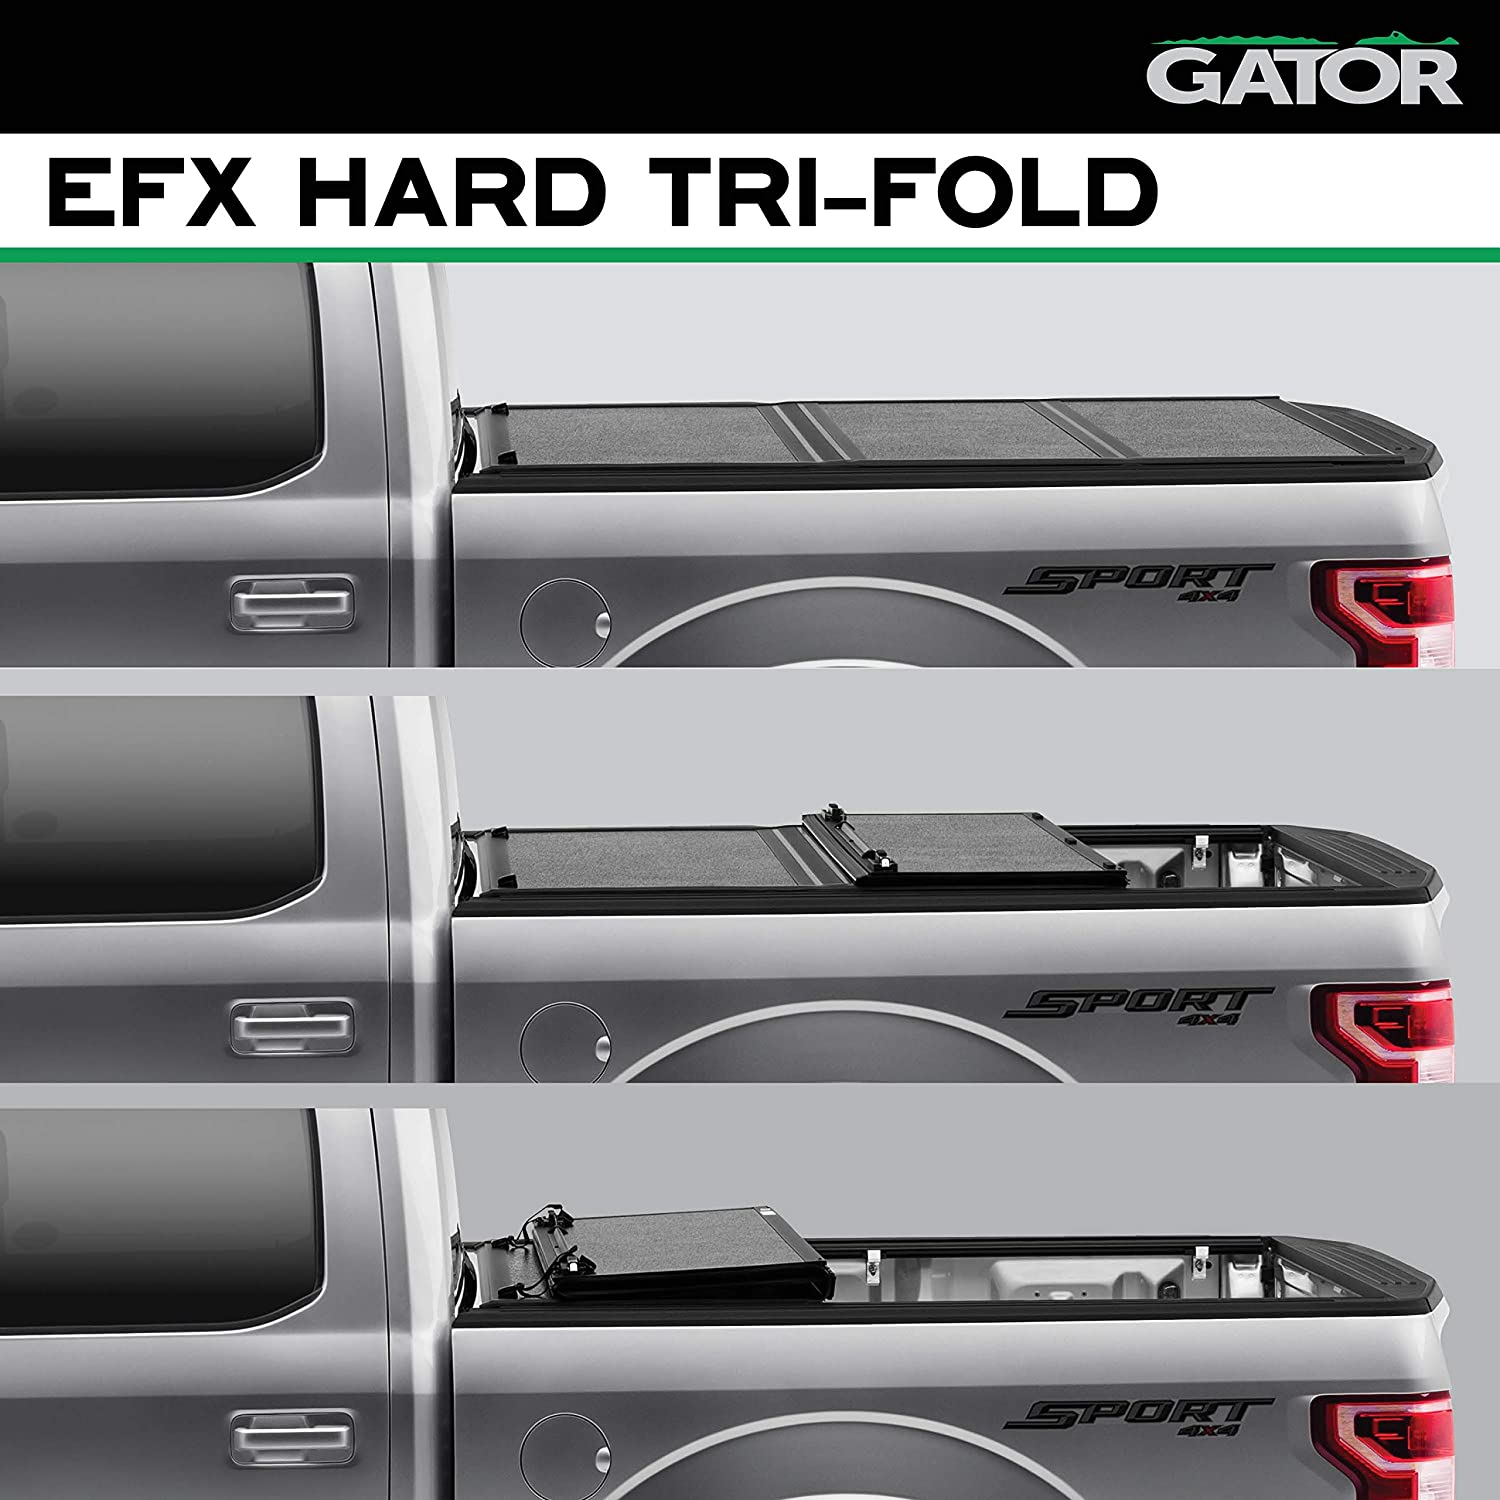 Amazon Com Gator Efx Hard Tri Fold Truck Bed Tonneau Cover Gc44014 Fits 2016 2020 Toyota Tacoma W Cargo Management System 5 Bed Made In The Usa Automotive